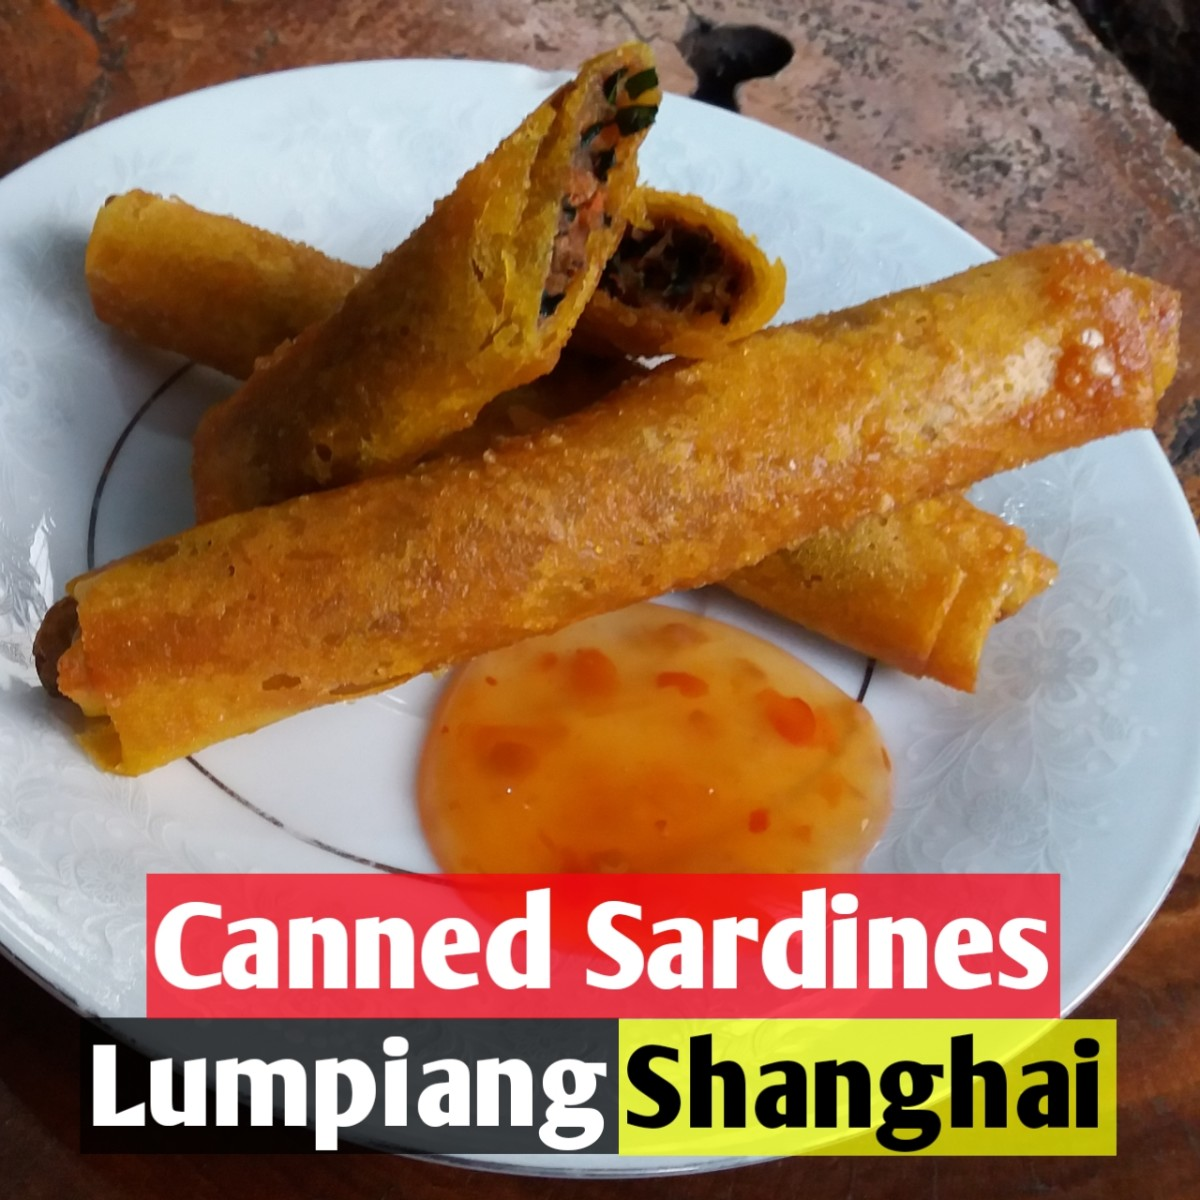 Canned sardines lumpiang Shanghai